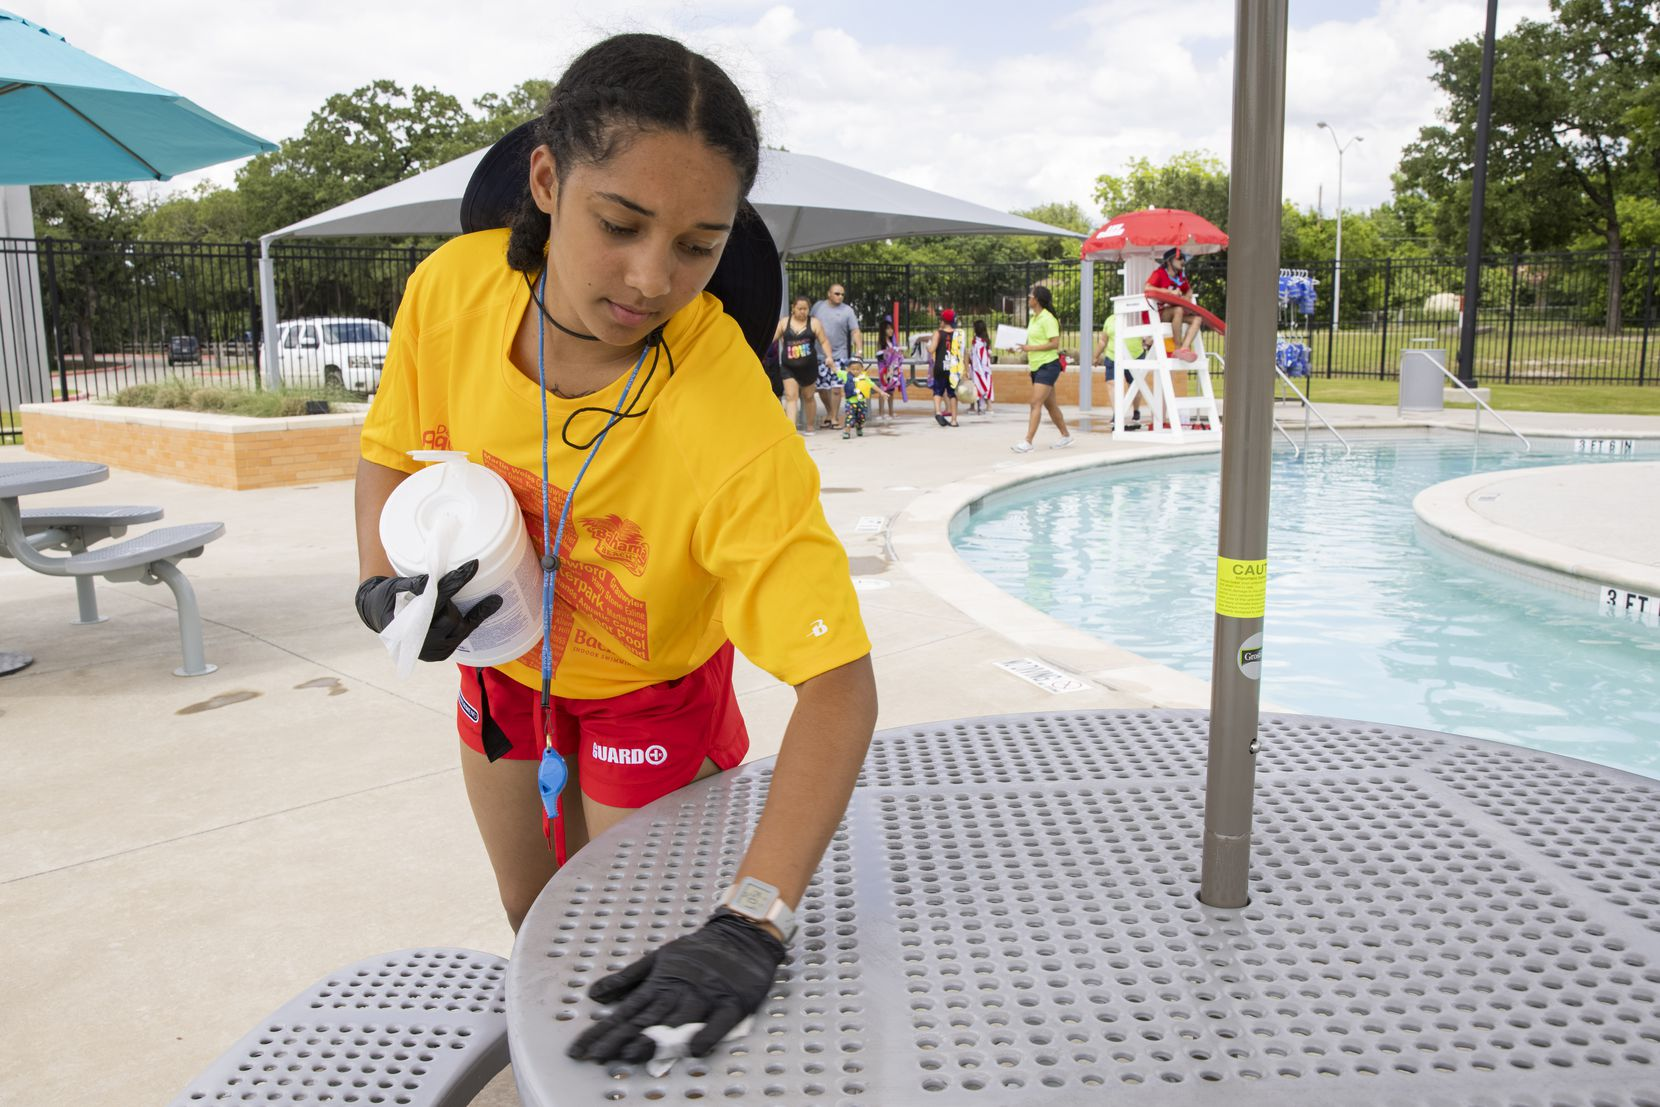 Lifeguard Jaedan Freeman, 17, wipes down tables with disinfectant wipes during a break at the Cove Aquatic Center at Crawford, in Dallas' Pleasant Grove community, on Saturday, May 29, 2021.